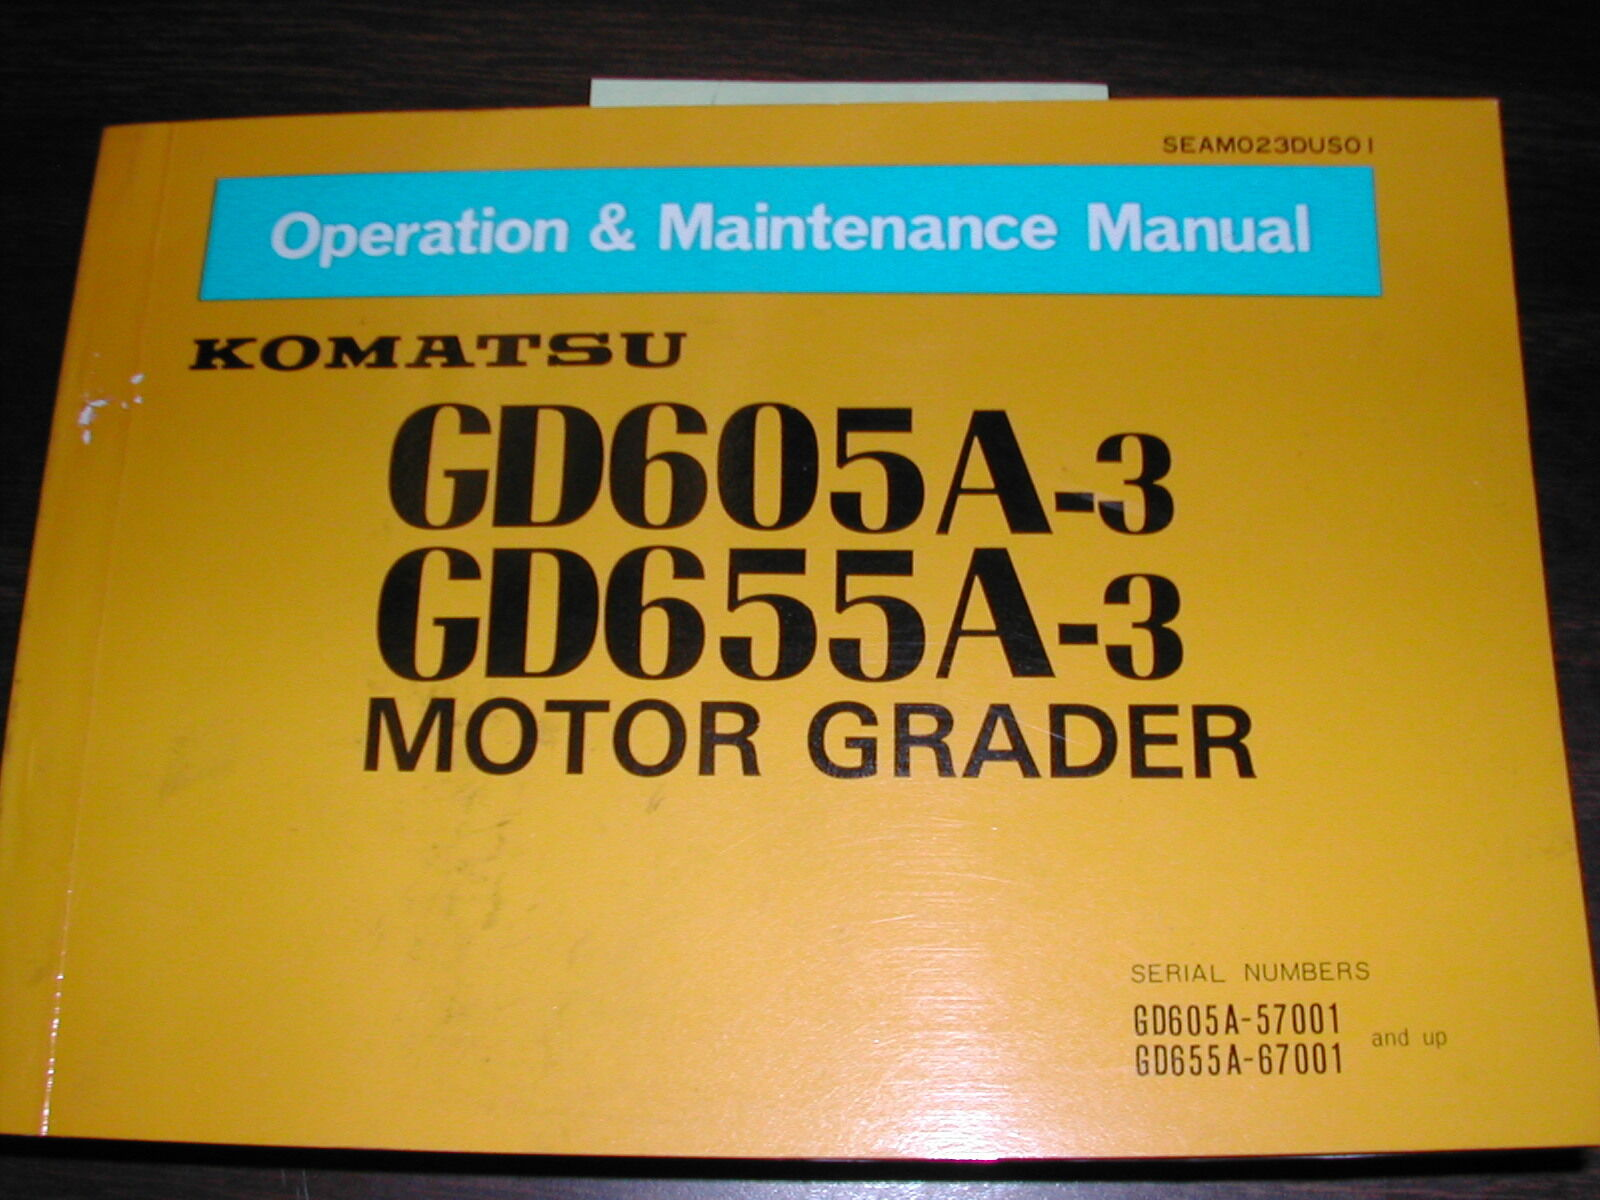 Komatsu GD605A-3 655A-3 OPERATION MAINTENANCE MANUAL MOTOR GRADER OPERATOR  GUIDE 1 of 1Only 2 available ...